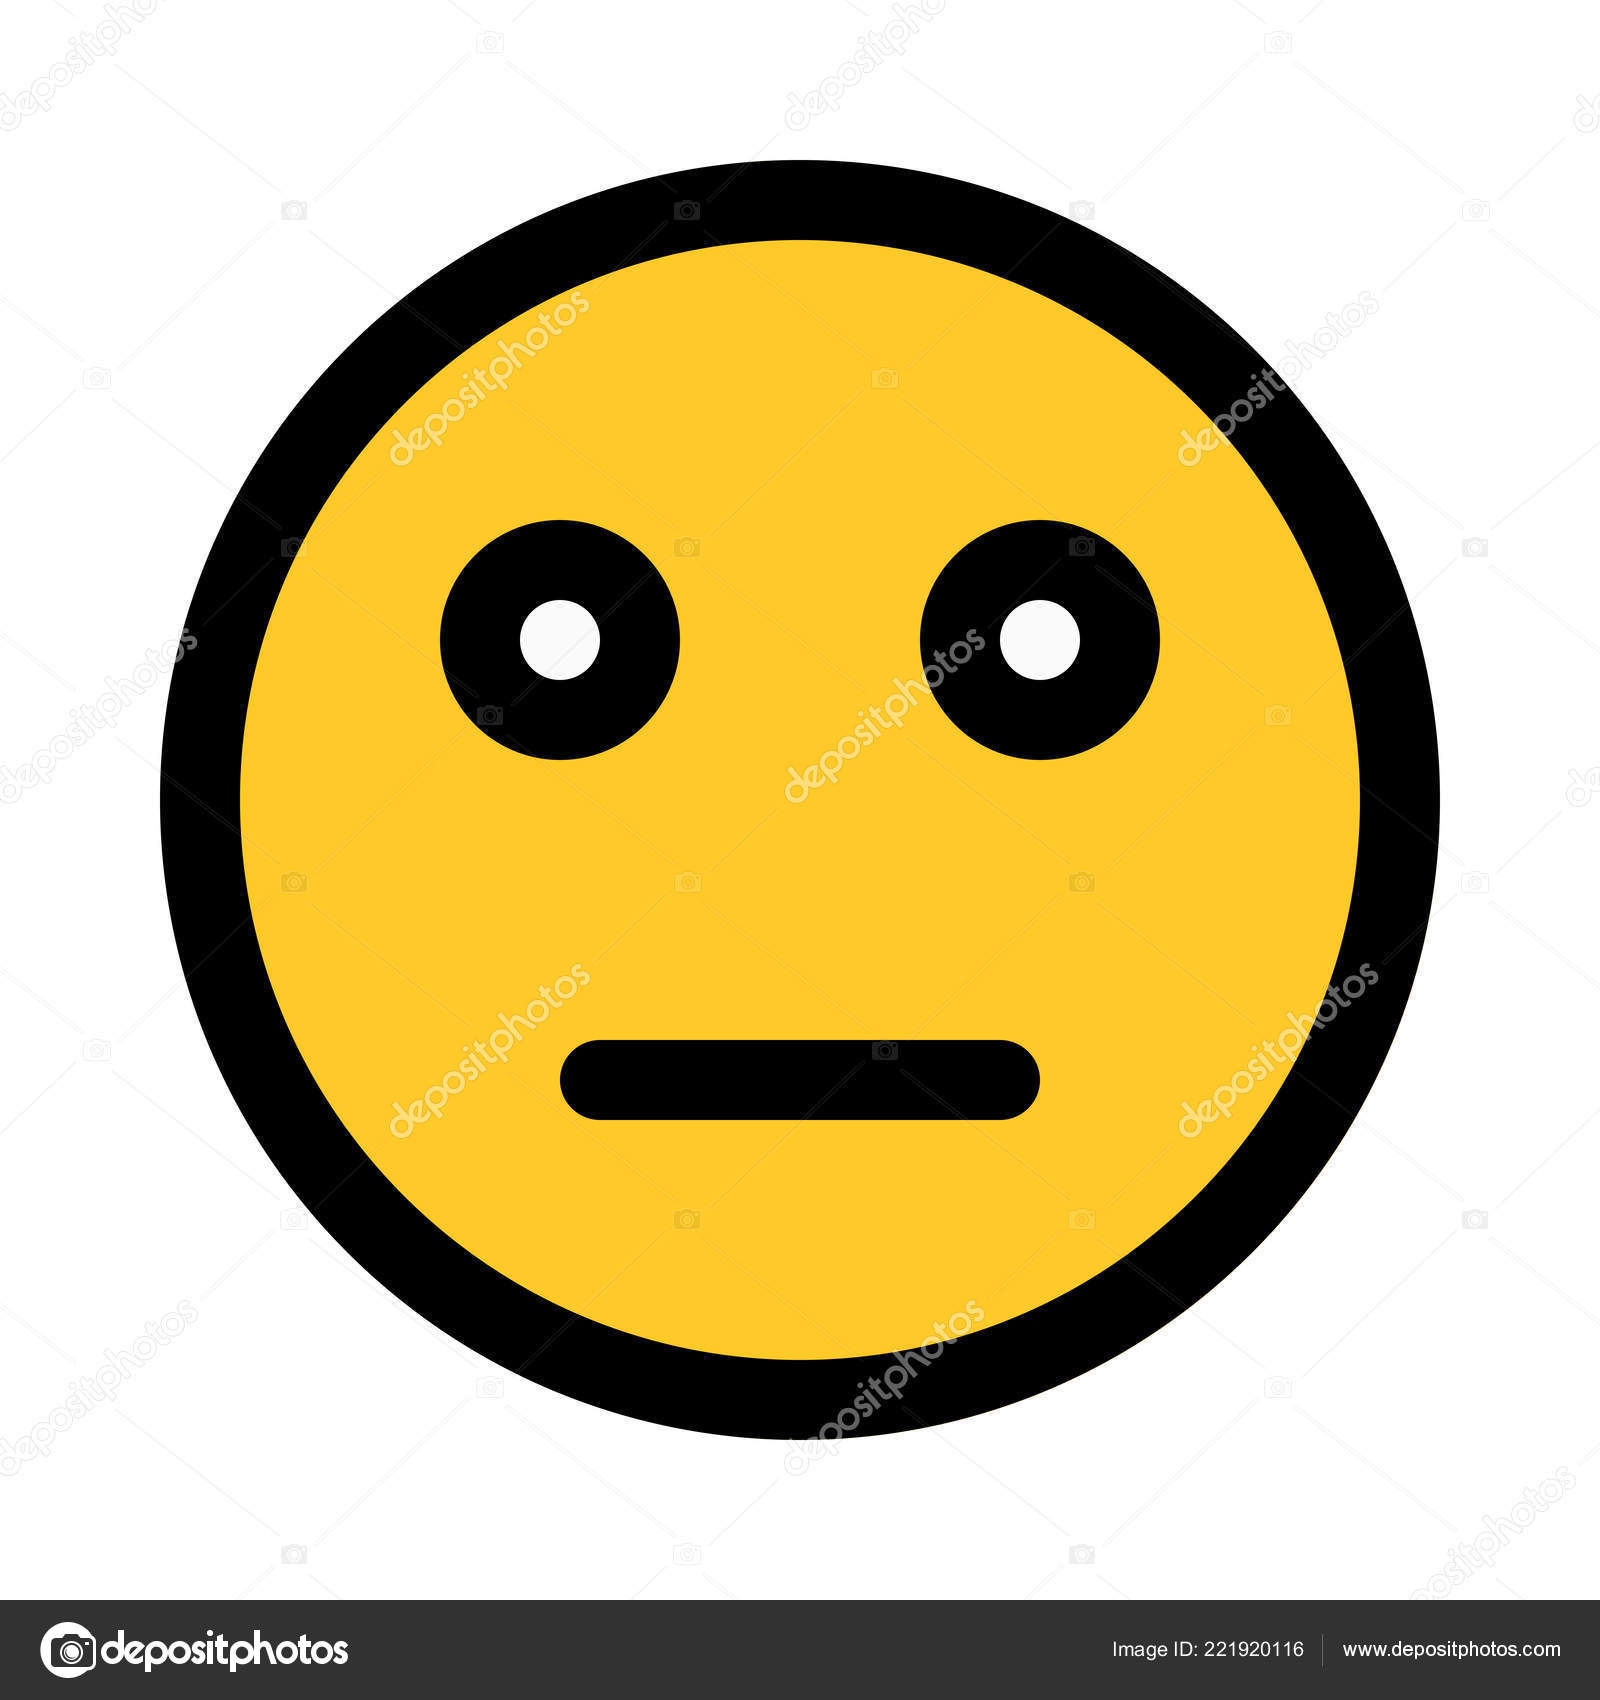 Expressionless Neutral Emoji Colorful Vector Illustration Stock